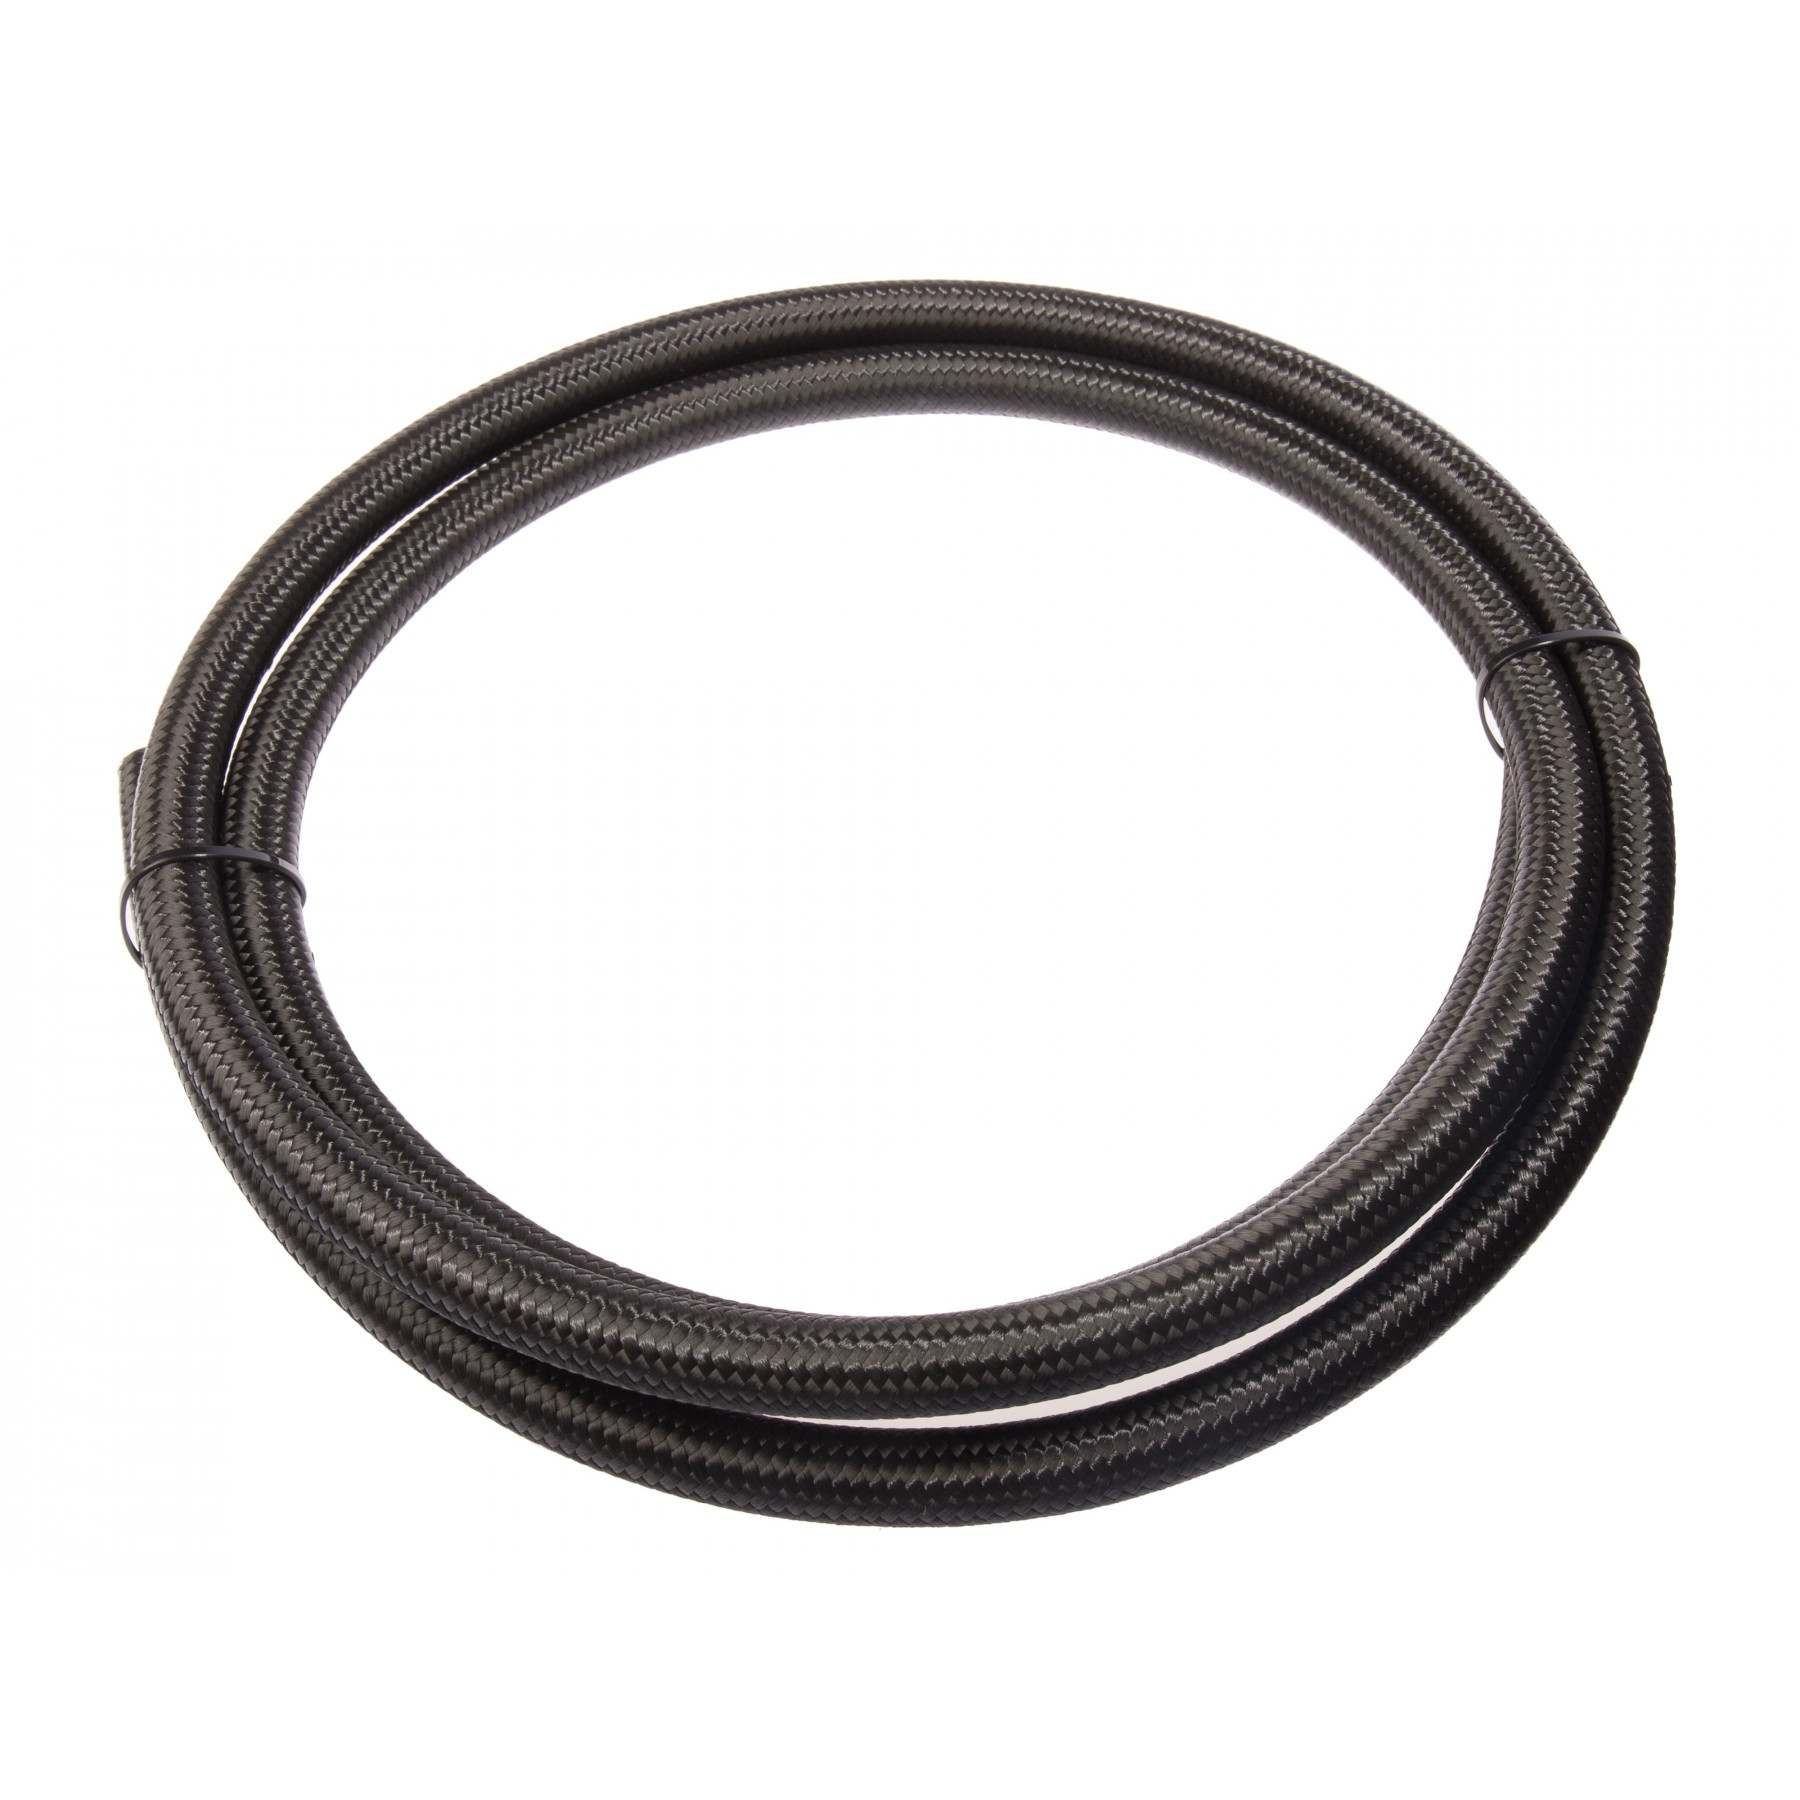 COMPETITION FUEL LINE